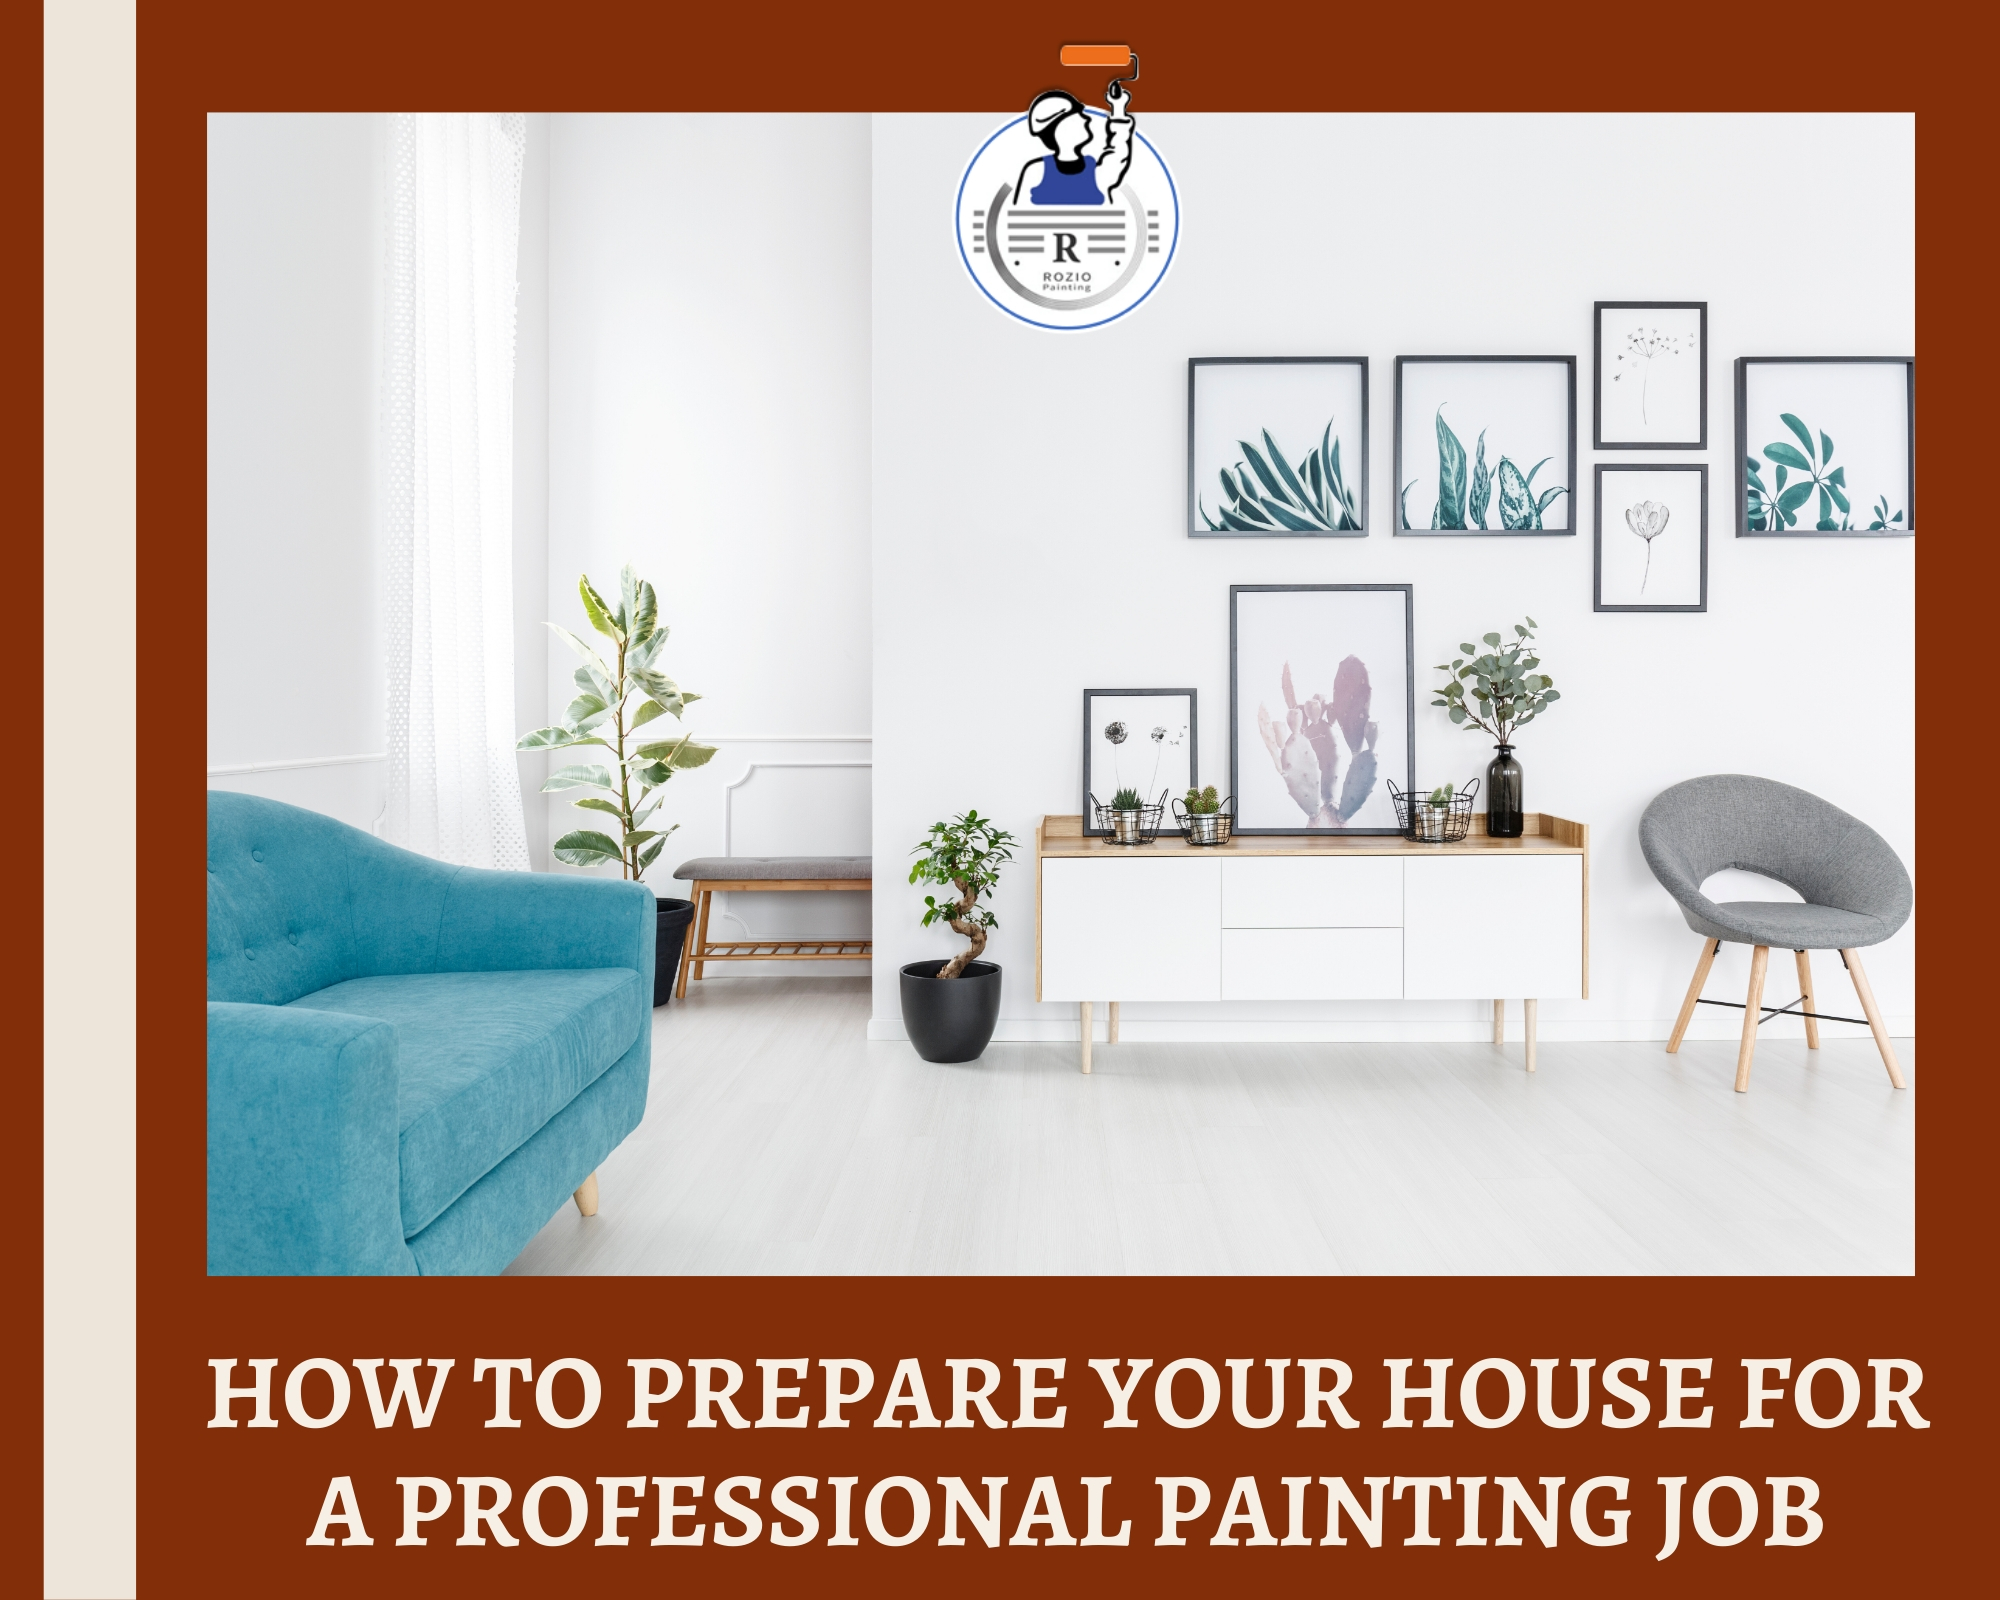 How to Prepare Your House For a Professional Painting Job